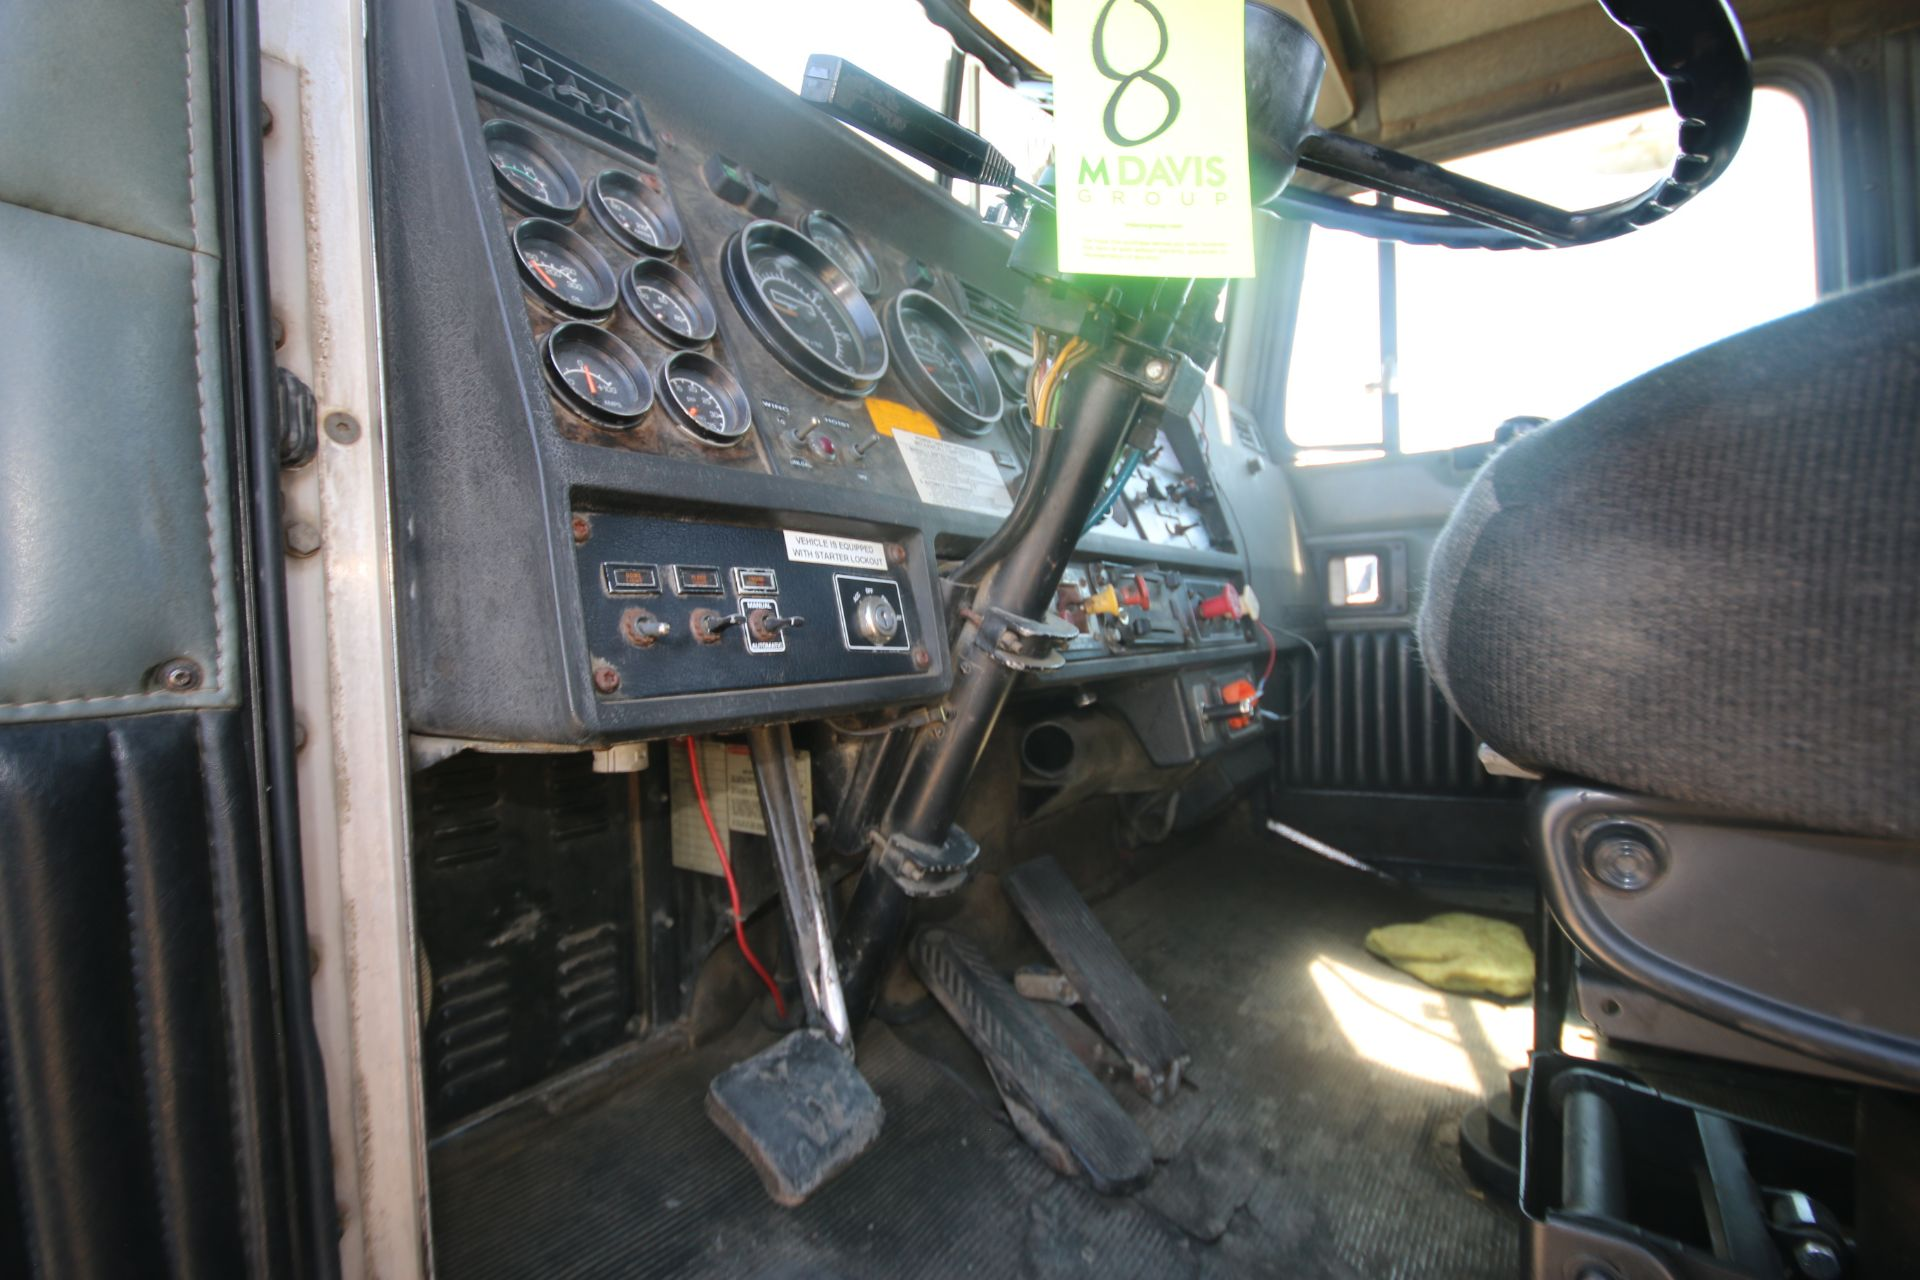 1996 Kenworth 3-Axle Roll-Off Straight Truck, VIN #: 1XKDDB9XOTS687107, with 24,722 Miles, License - Image 15 of 30